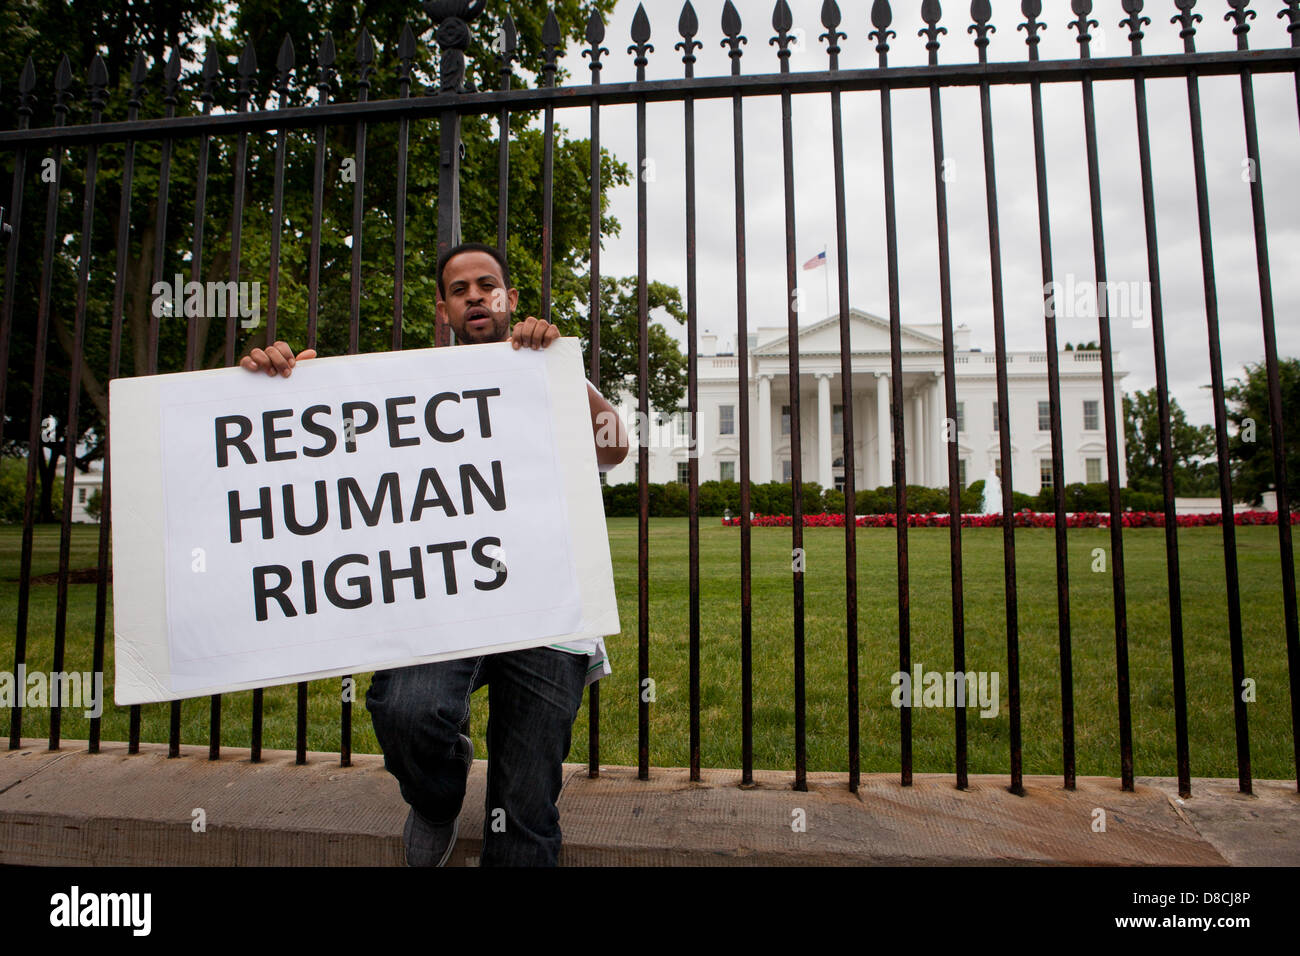 Human rights activist holding a sign outside of the White House fence - Washington, DC USA - Stock Image